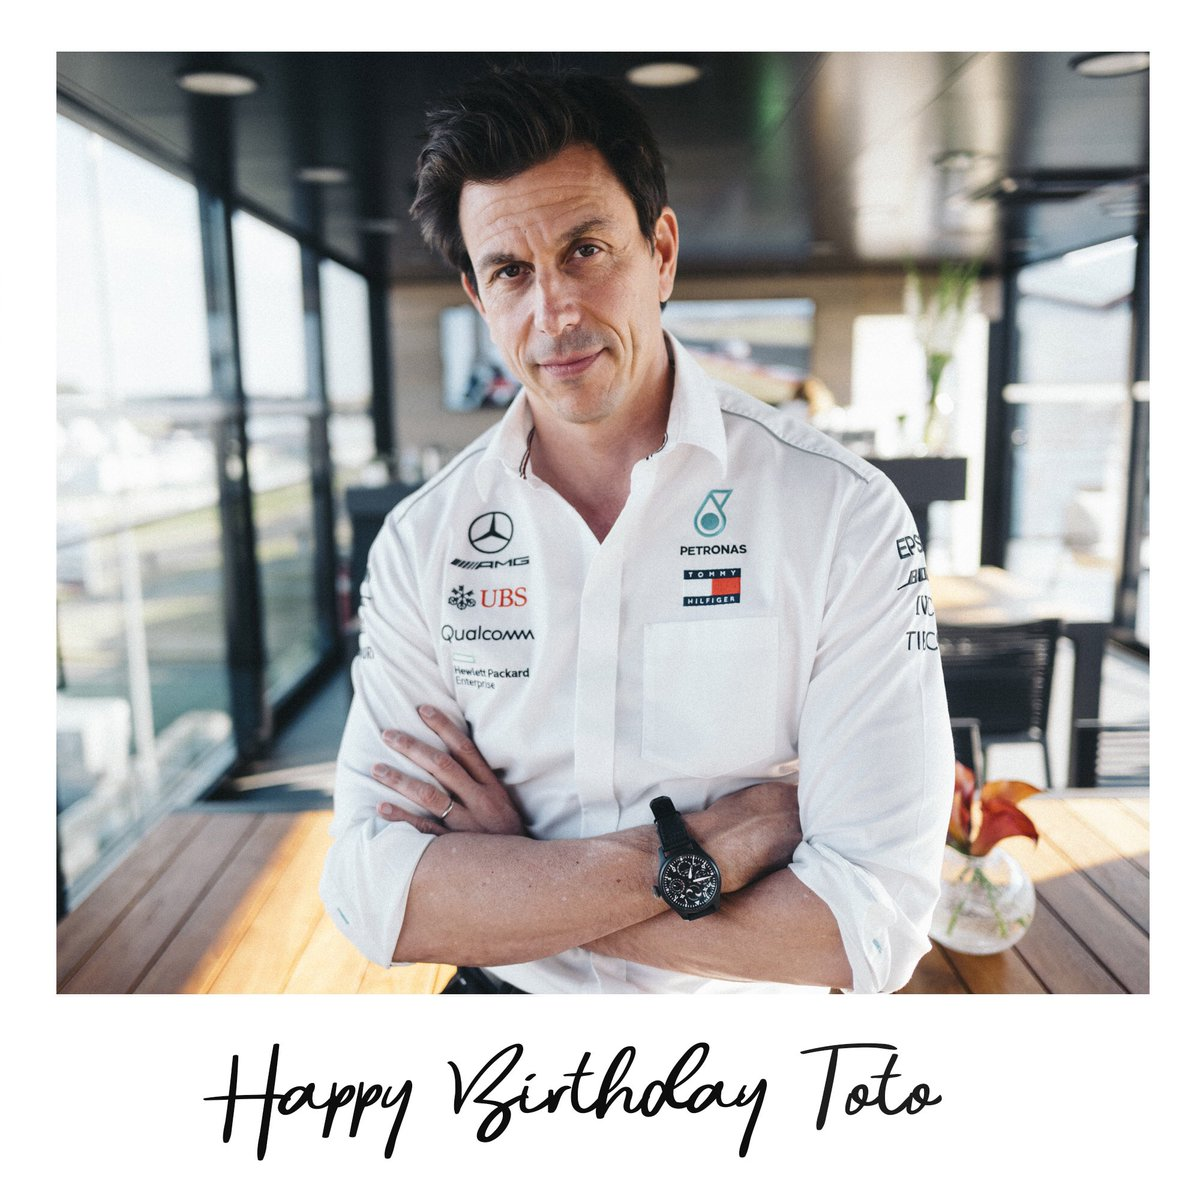 RT @MercedesAMGF1: #HappyBirthdayToto 🎉🎈🥳   Comment below and share your birthday wishes with the boss! https://t.co/BrrCJ9suWA